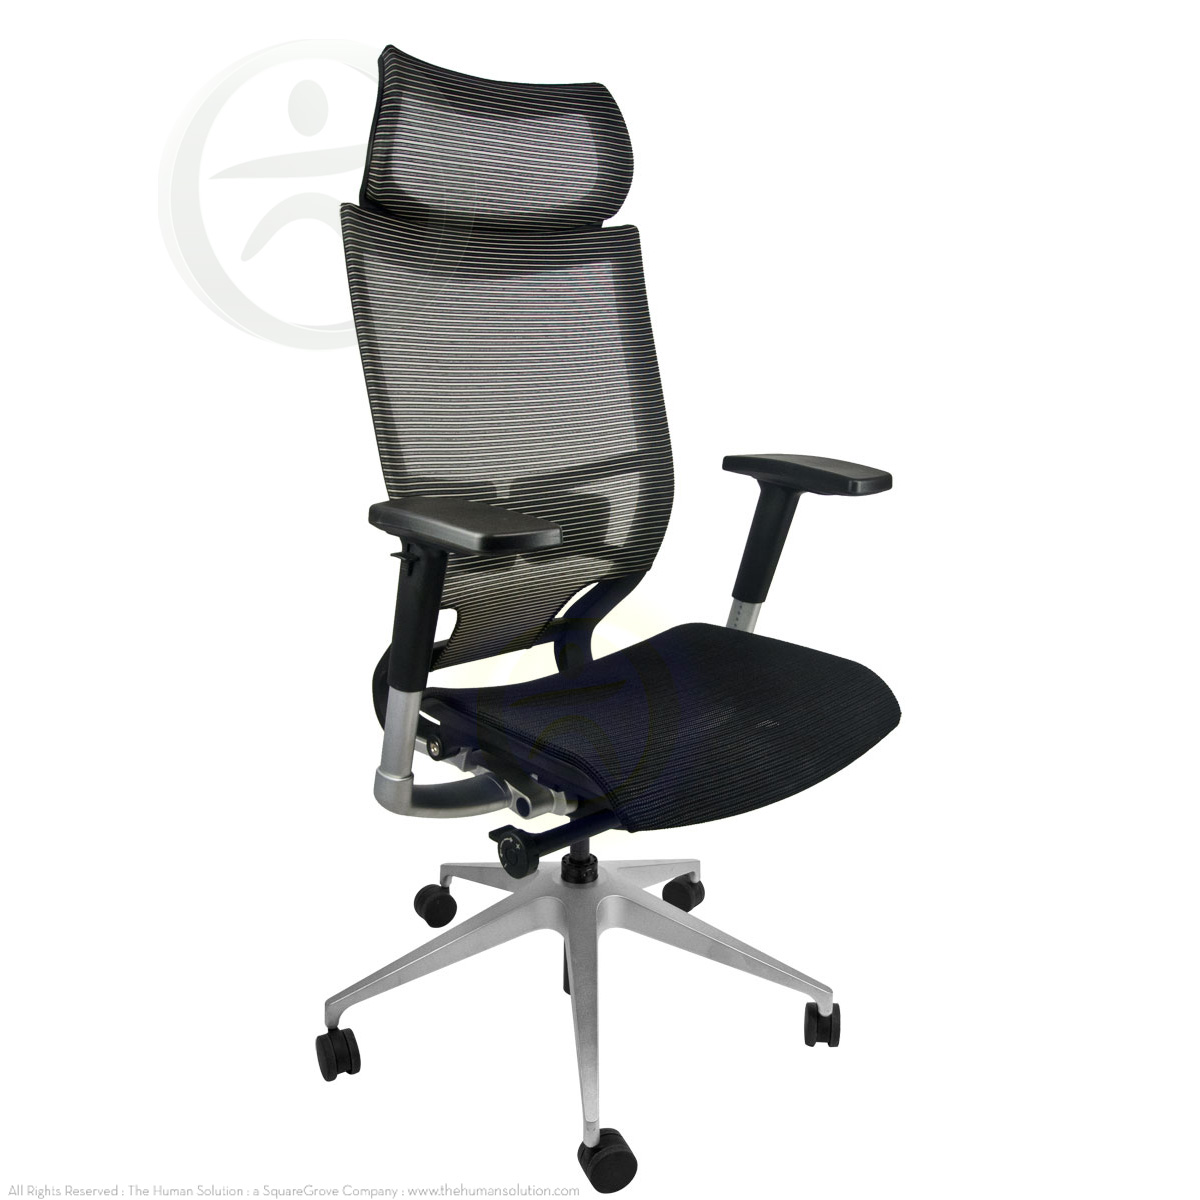 Raynor Chairs Raynor Nuvo Mesh Chair With Headrest Shop Mesh Chairs